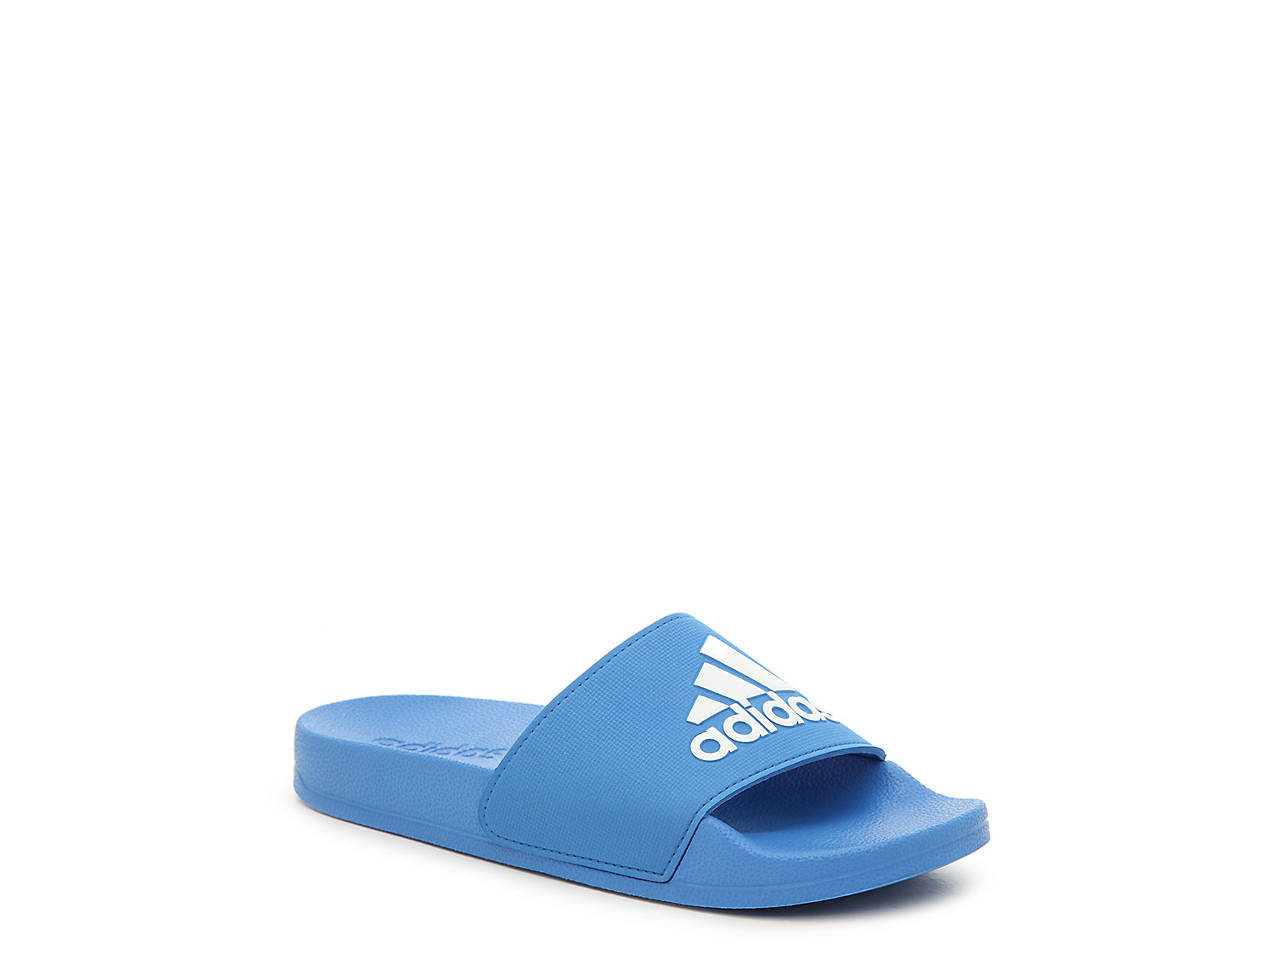 0986e161922c adidas Adilette Toddler   Youth Shower Slide Sandal Kids Shoes